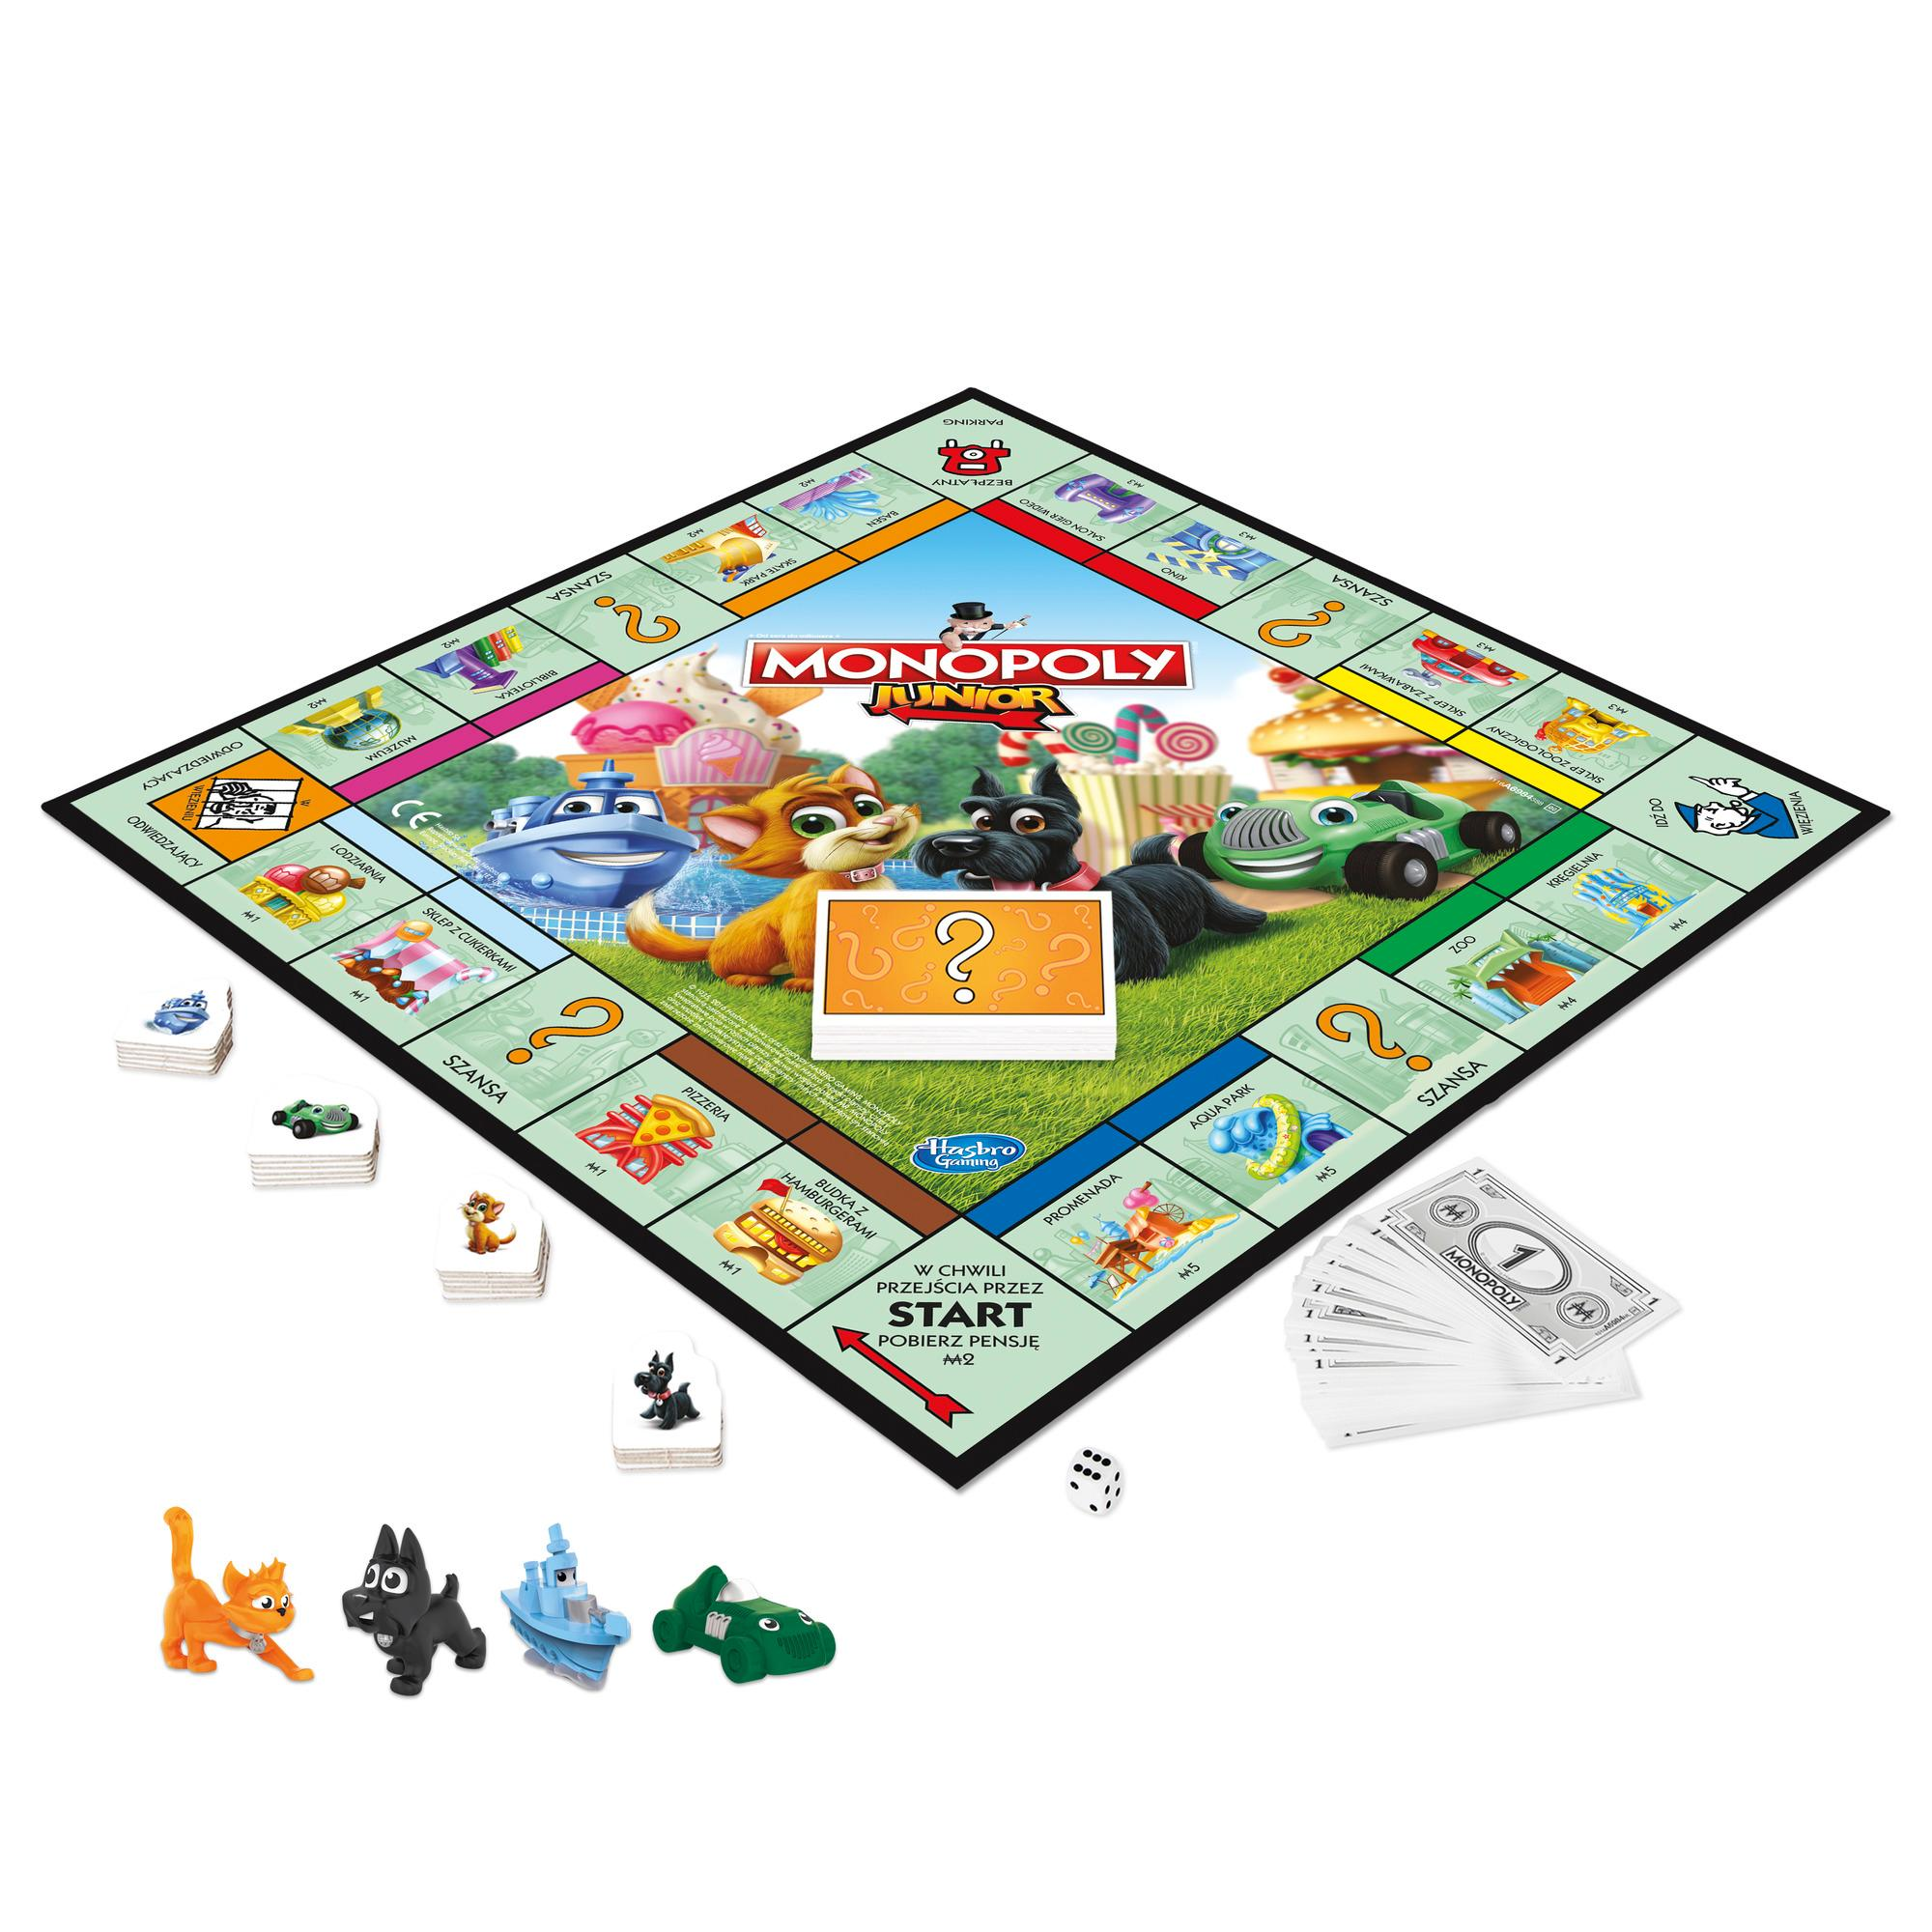 GRA MONOPOLY JUNIOR